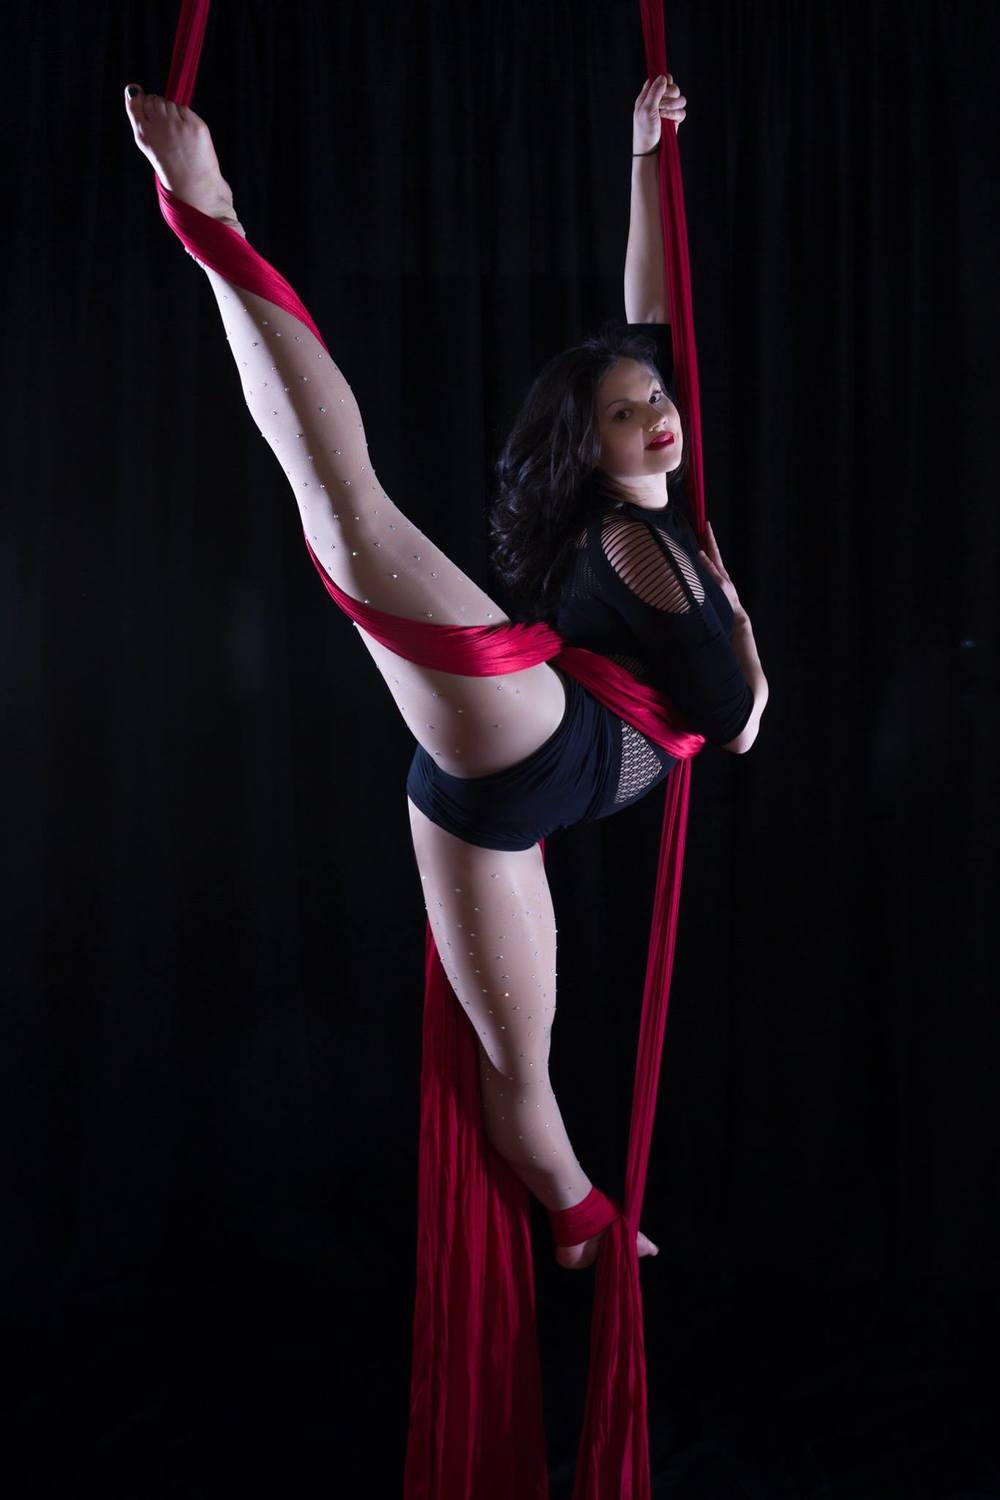 And flying on the aerial silks!